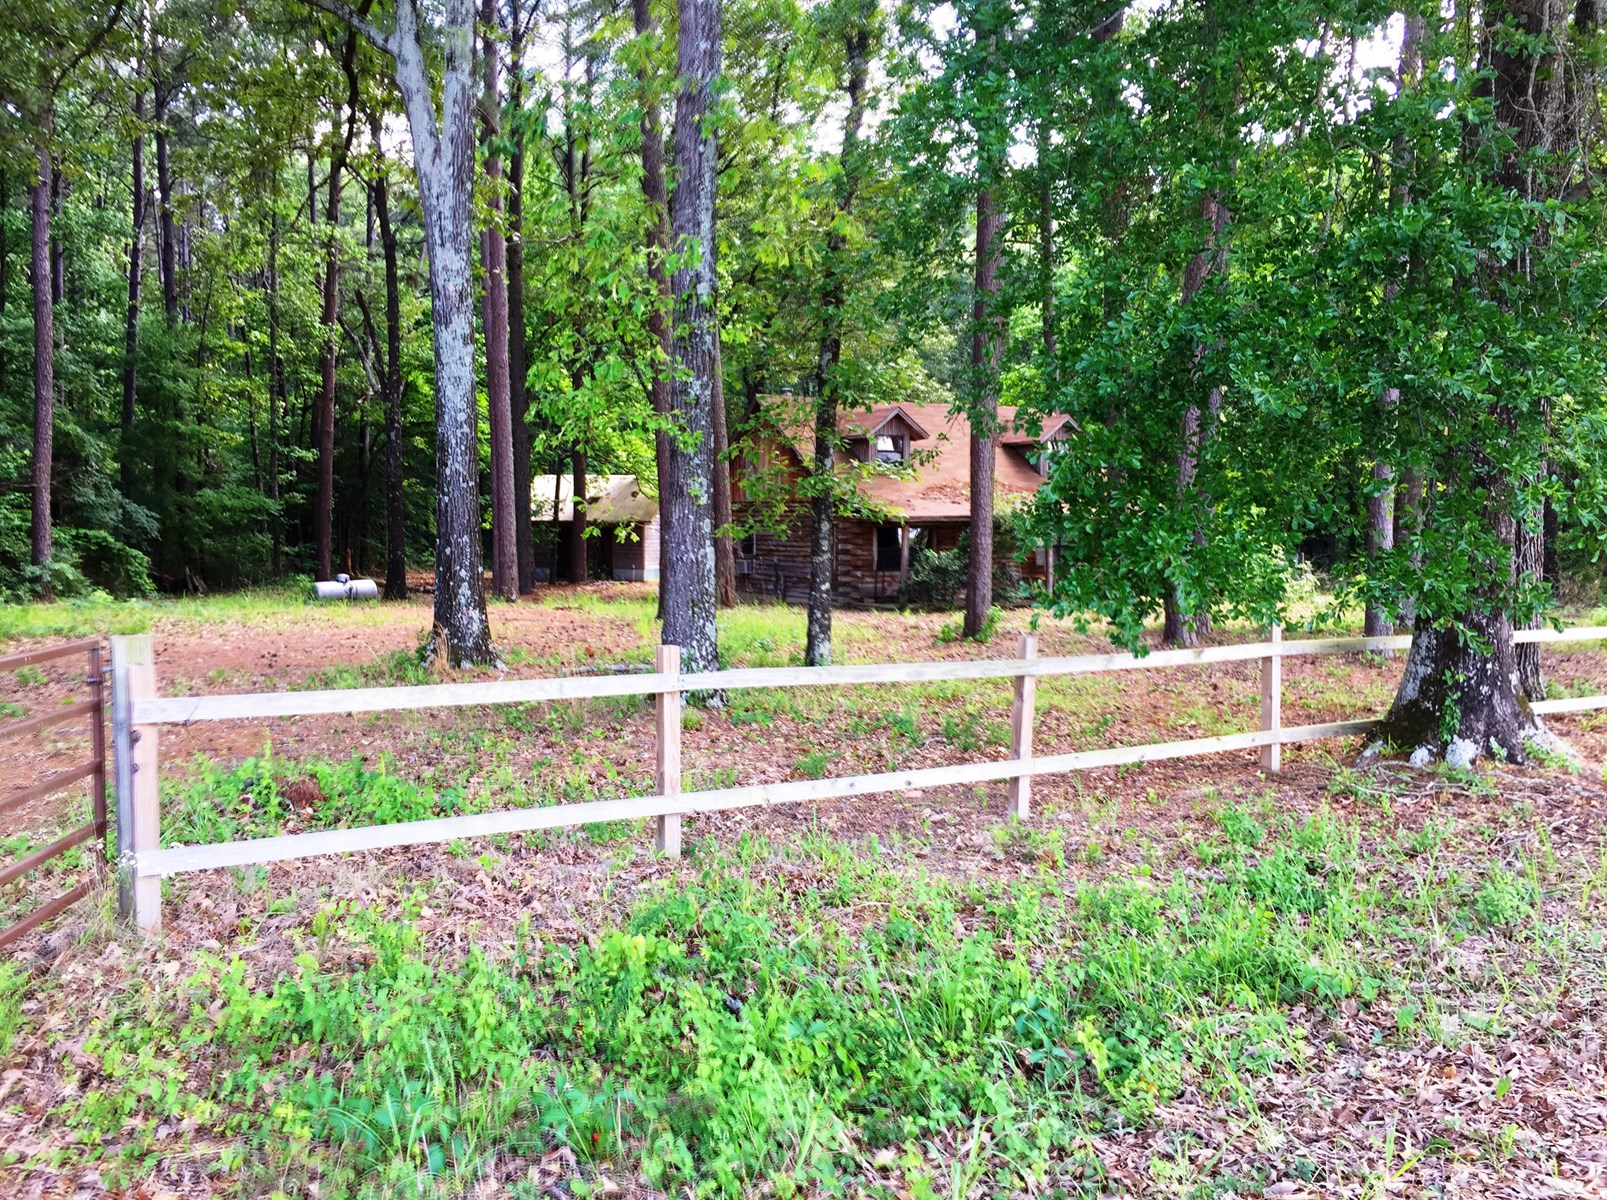 Sold - RUSTIC LOG CABIN & WOODED LAND FOR SALE IN EAST TEXAS